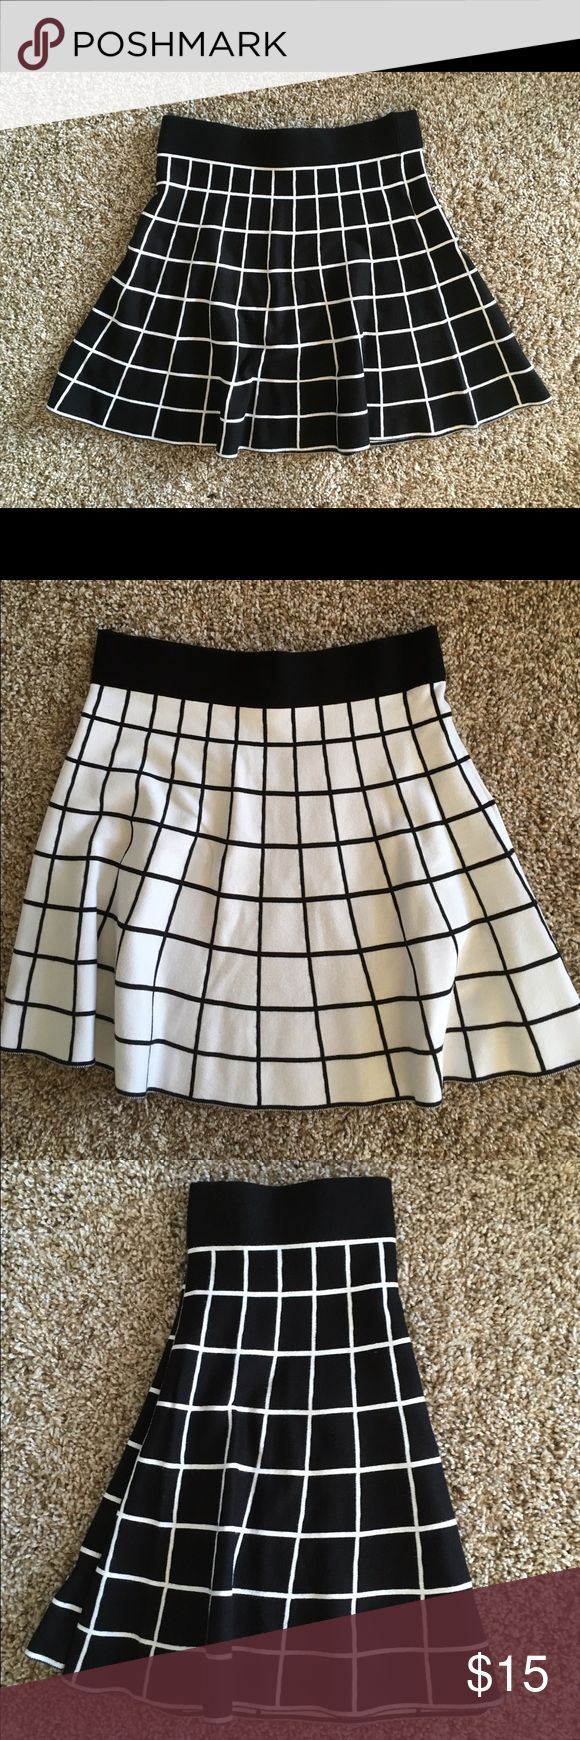 Black and White Skirt - Reversible! Forever 21 Contemporary Line - black and white design skirt w slight pleats for a cute flare. ~ knee length on me, and I am 5' tall. Just discovered this skirt is reversible if you cut the tag out correctly; I never know so left it intact. White side would have exposed black seam, but you can definitely wear it either way with a few thread snips. Size Small; true to size. Great for work or play! Feel free to make an offer! Forever 21 Skirts